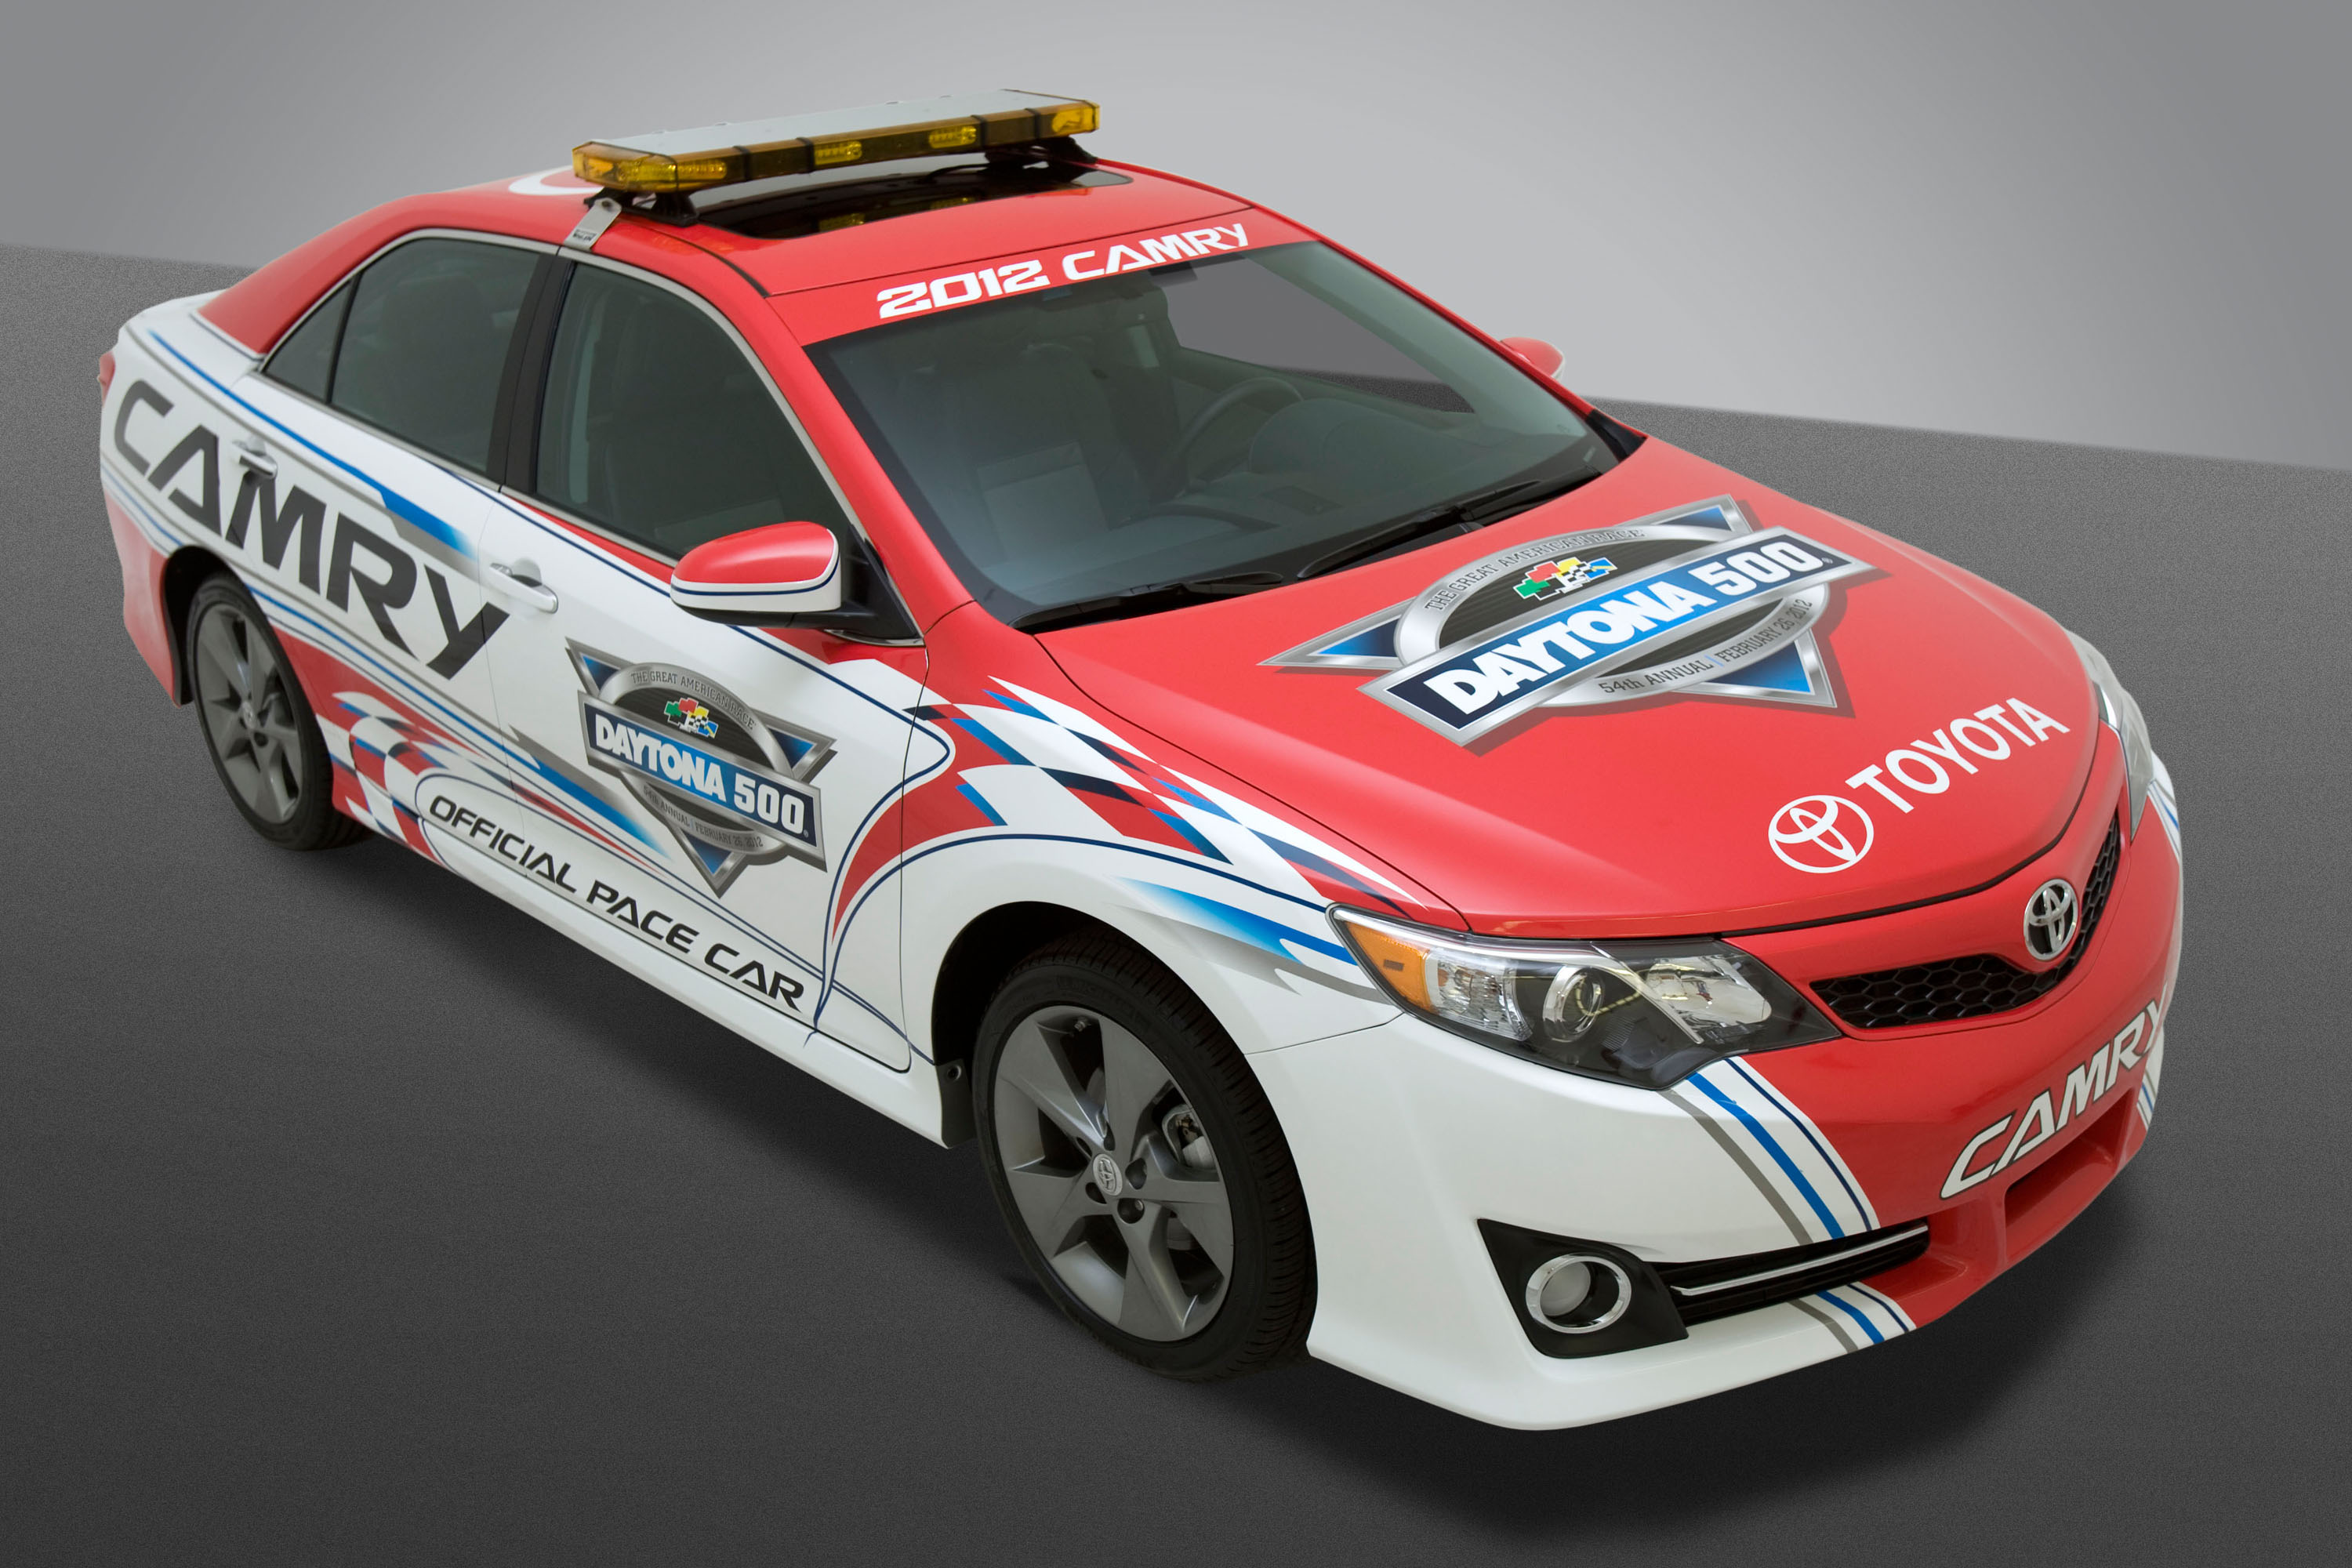 2012 Toyota Camry Revealed Set To Pace Daytona 500